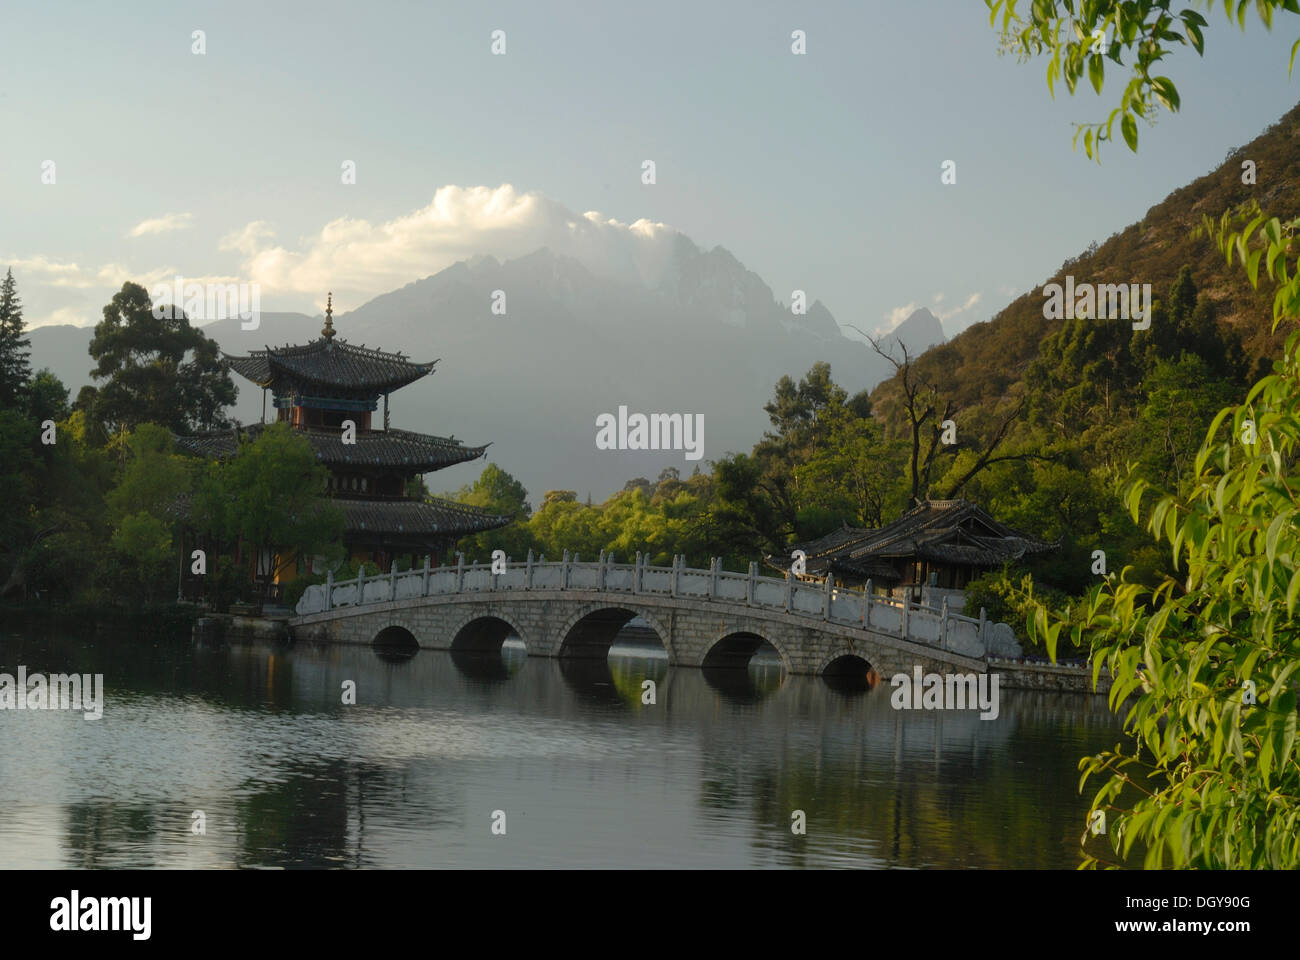 Pagoda, pavilion and Chinese bridge in the Black Dragon Pool Park, in the back the Jade Dragon Snow Mountain, 5596m - Stock Image